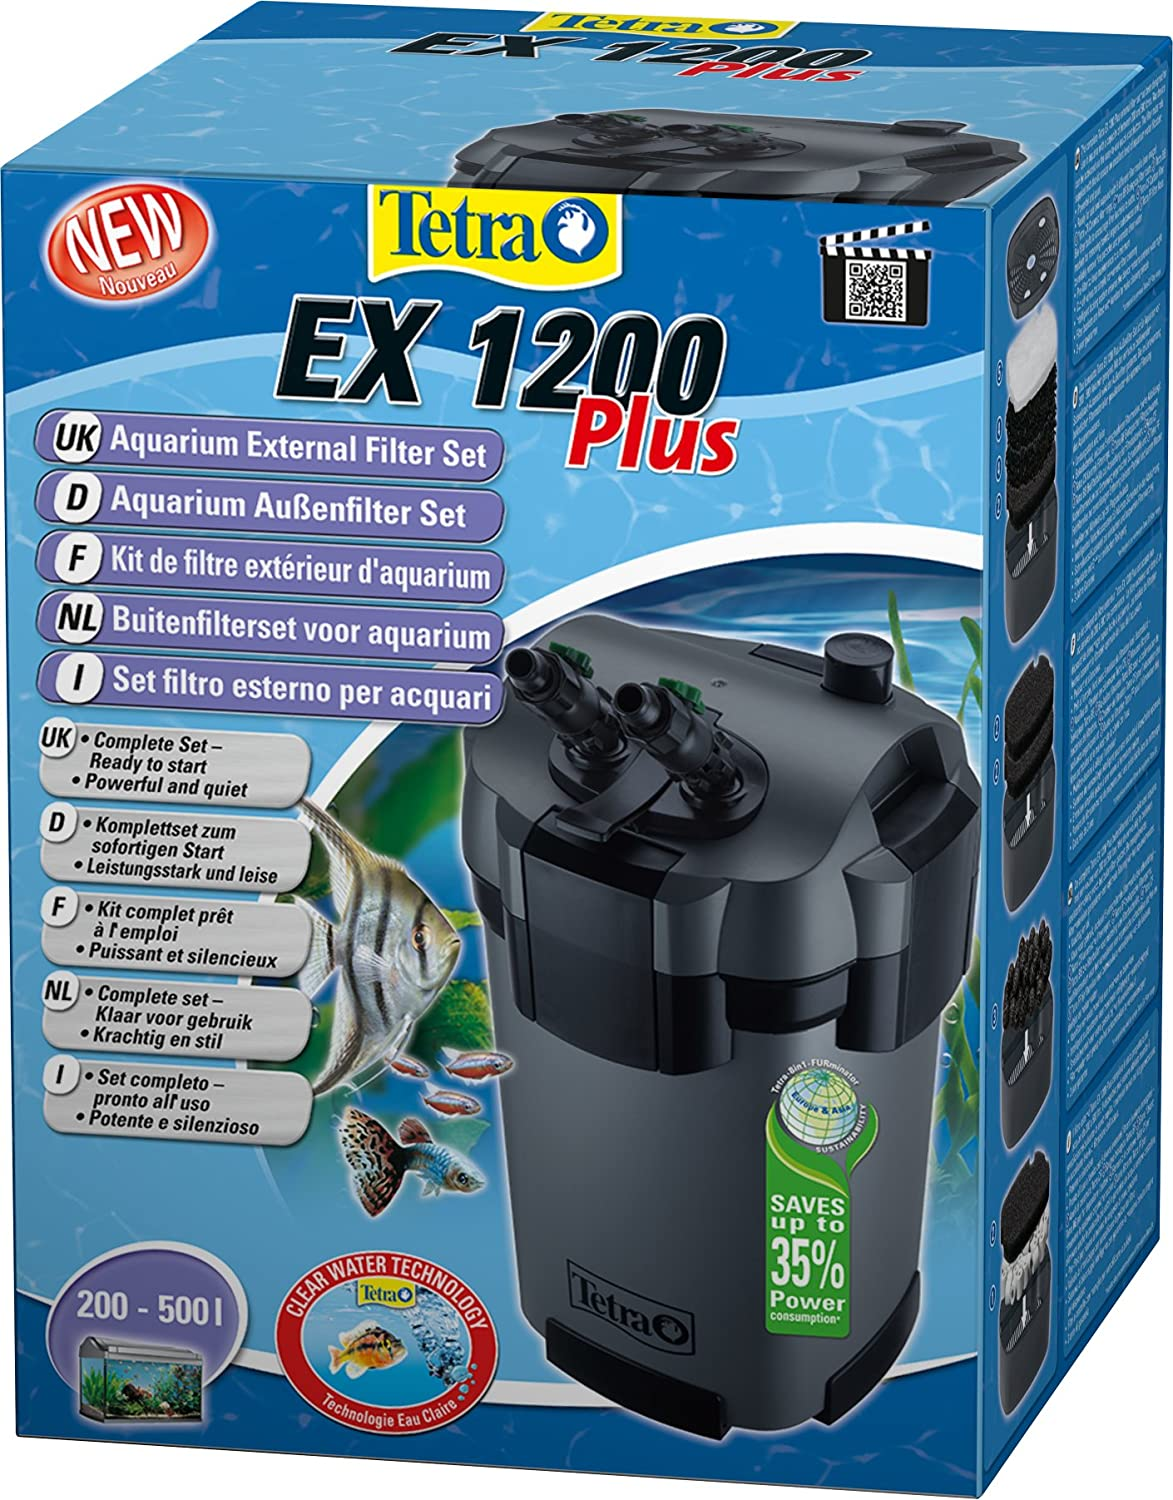 81 hGpfR69L._SL1500_ tetra tec ex 700 external filter amazon co uk pet supplies  at cos-gaming.co